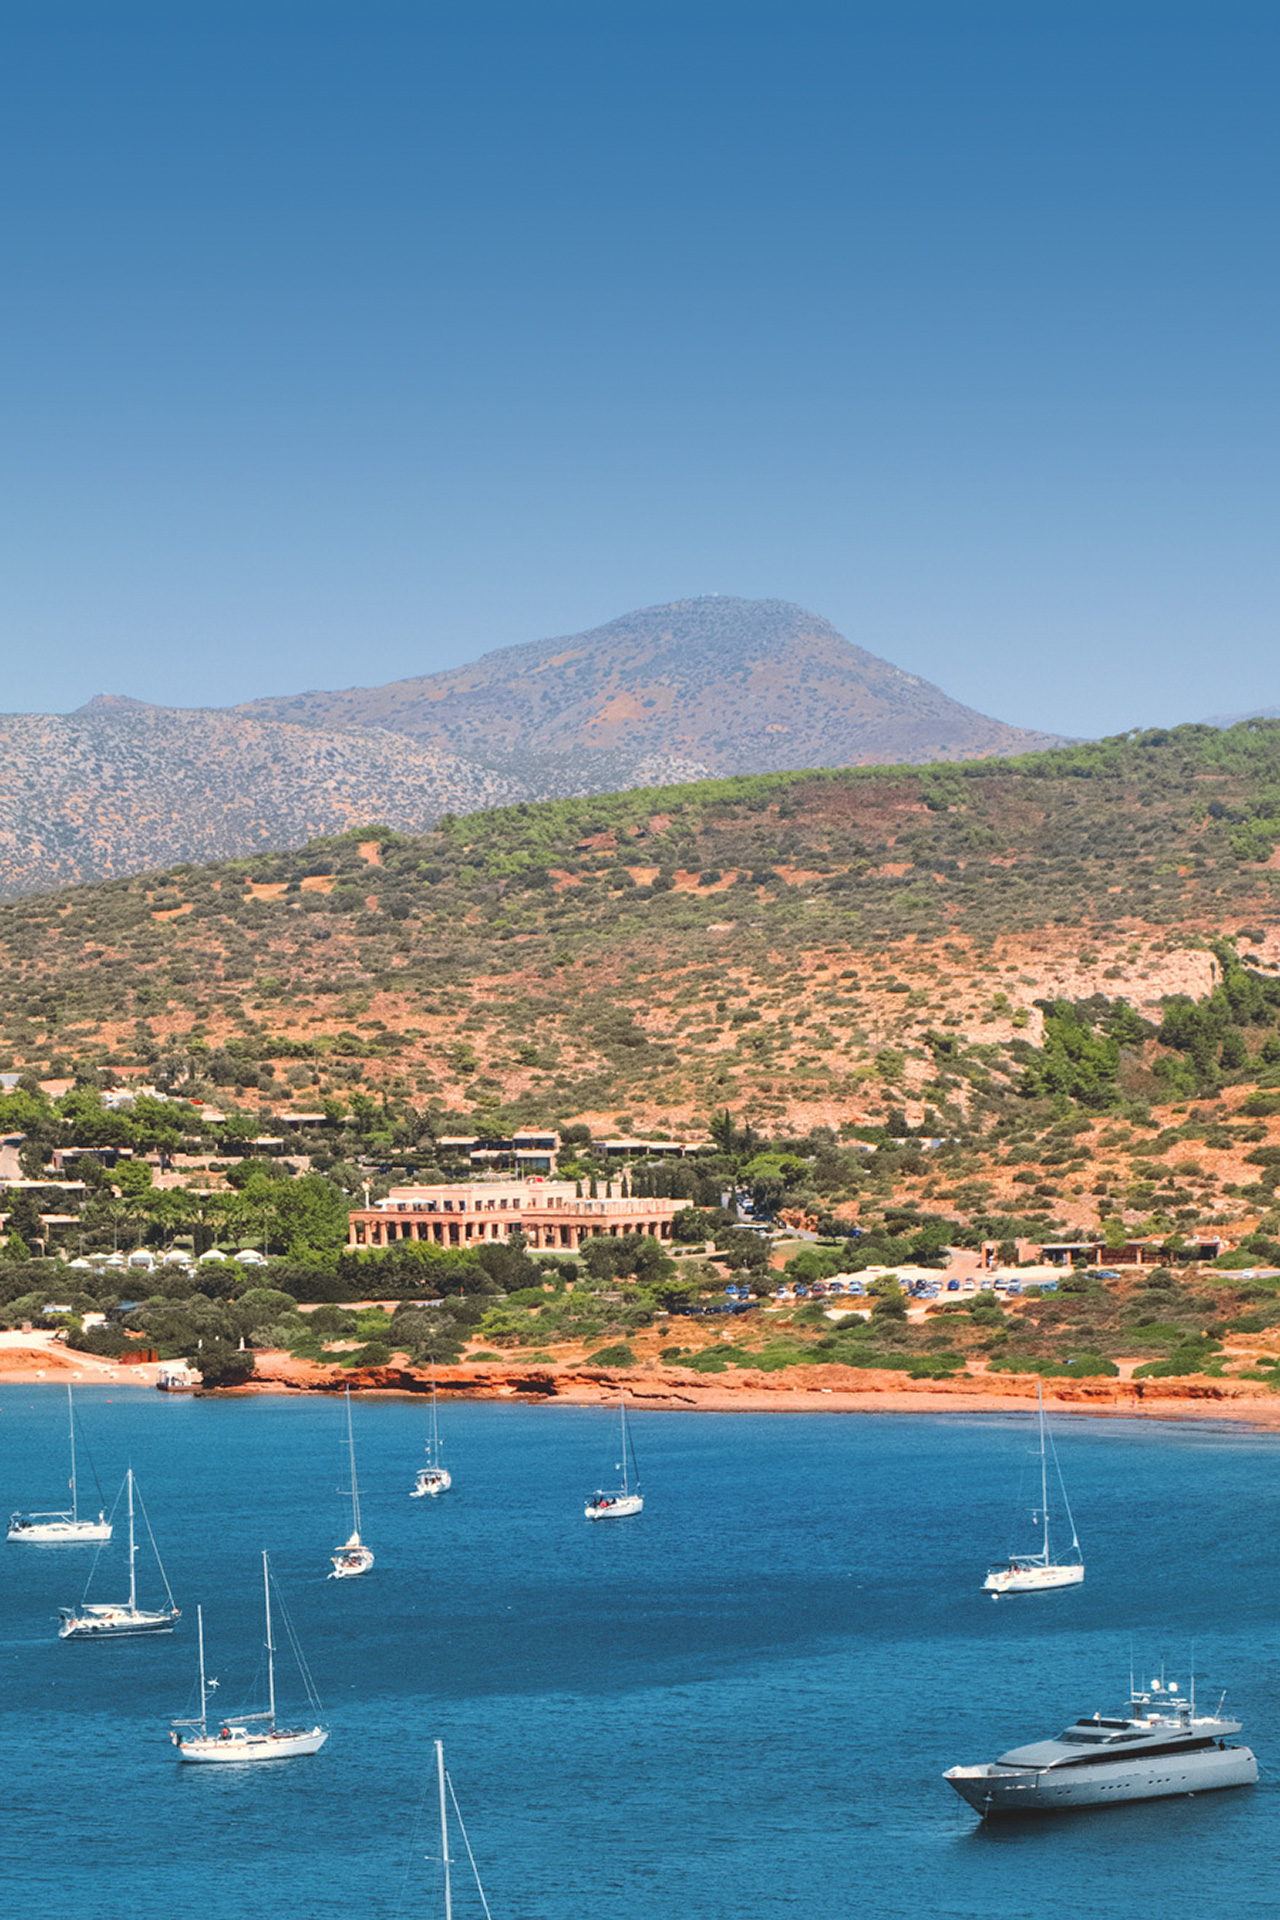 There are plenty of accommodation options, including luxury 5 hotels, in Sounion